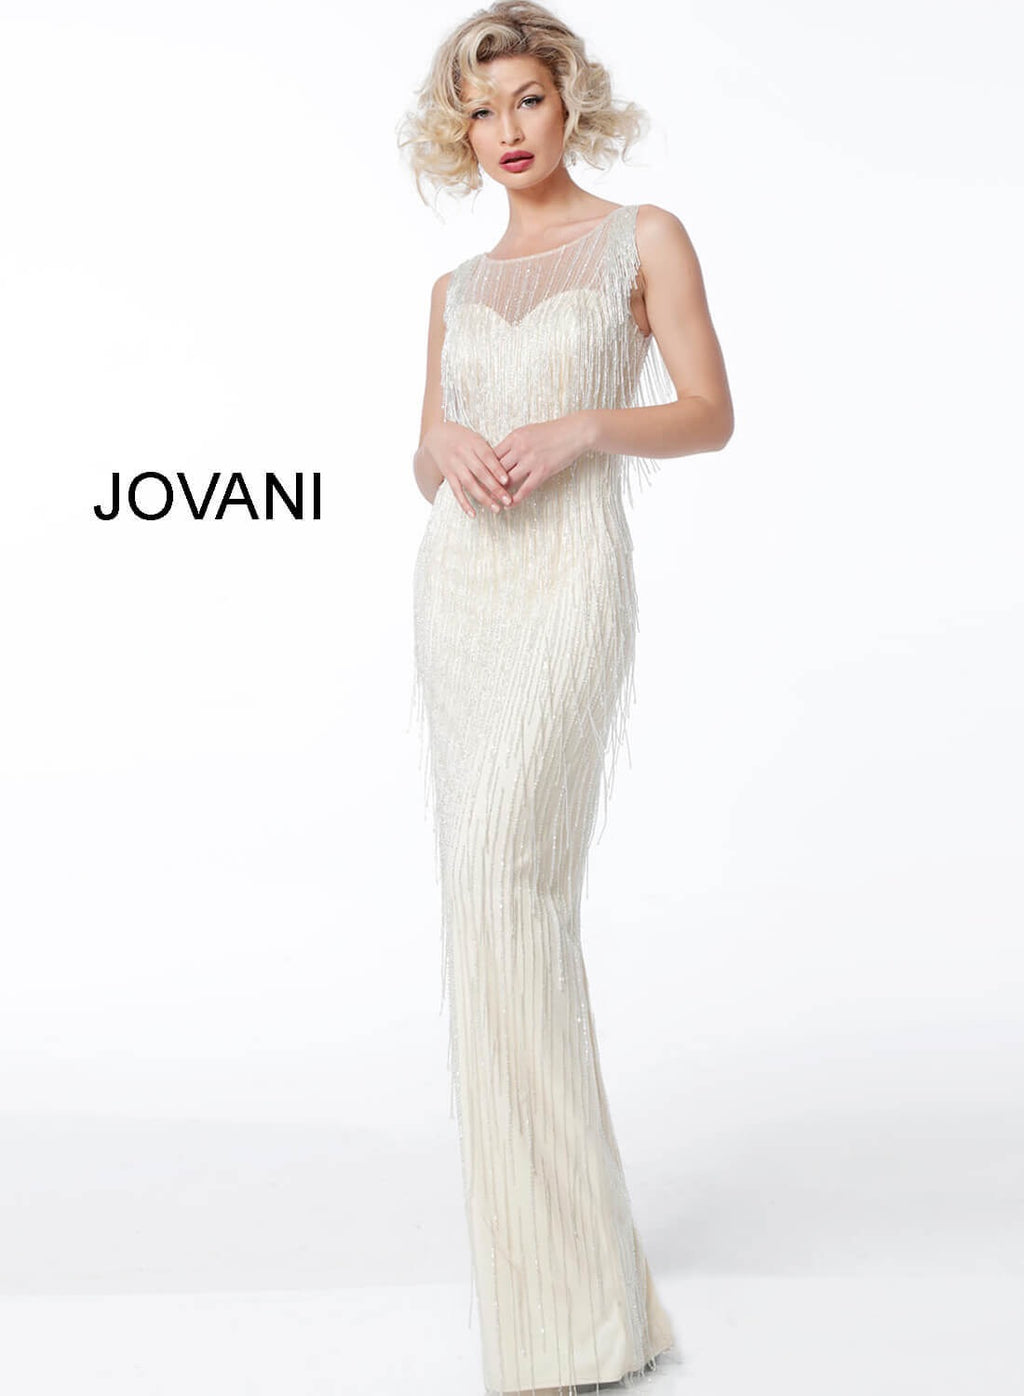 JOVANI 62678 Sleeveless Fringe Evening Dress